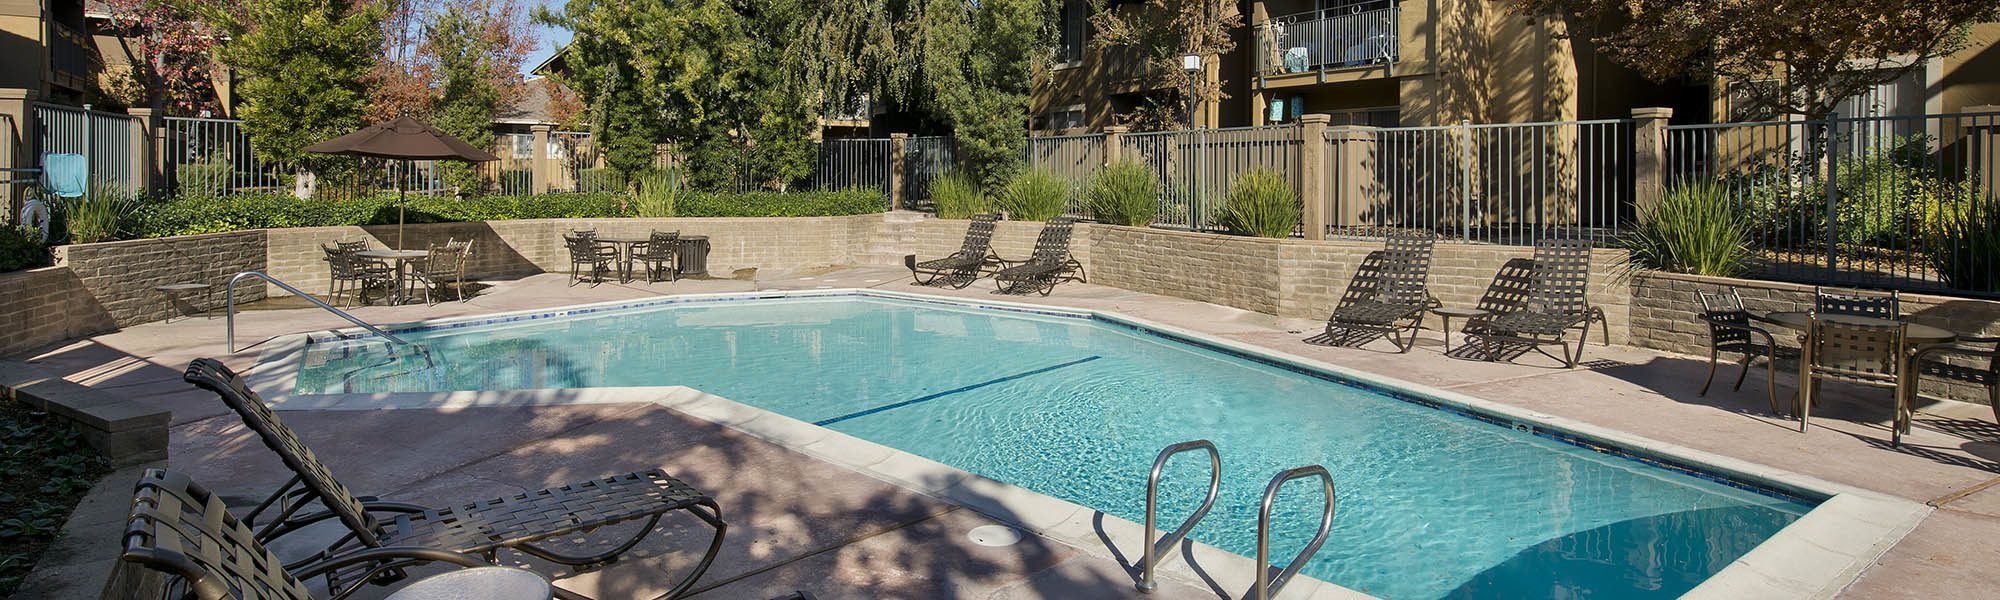 Contact Valley Ridge Apartment Homes on our website